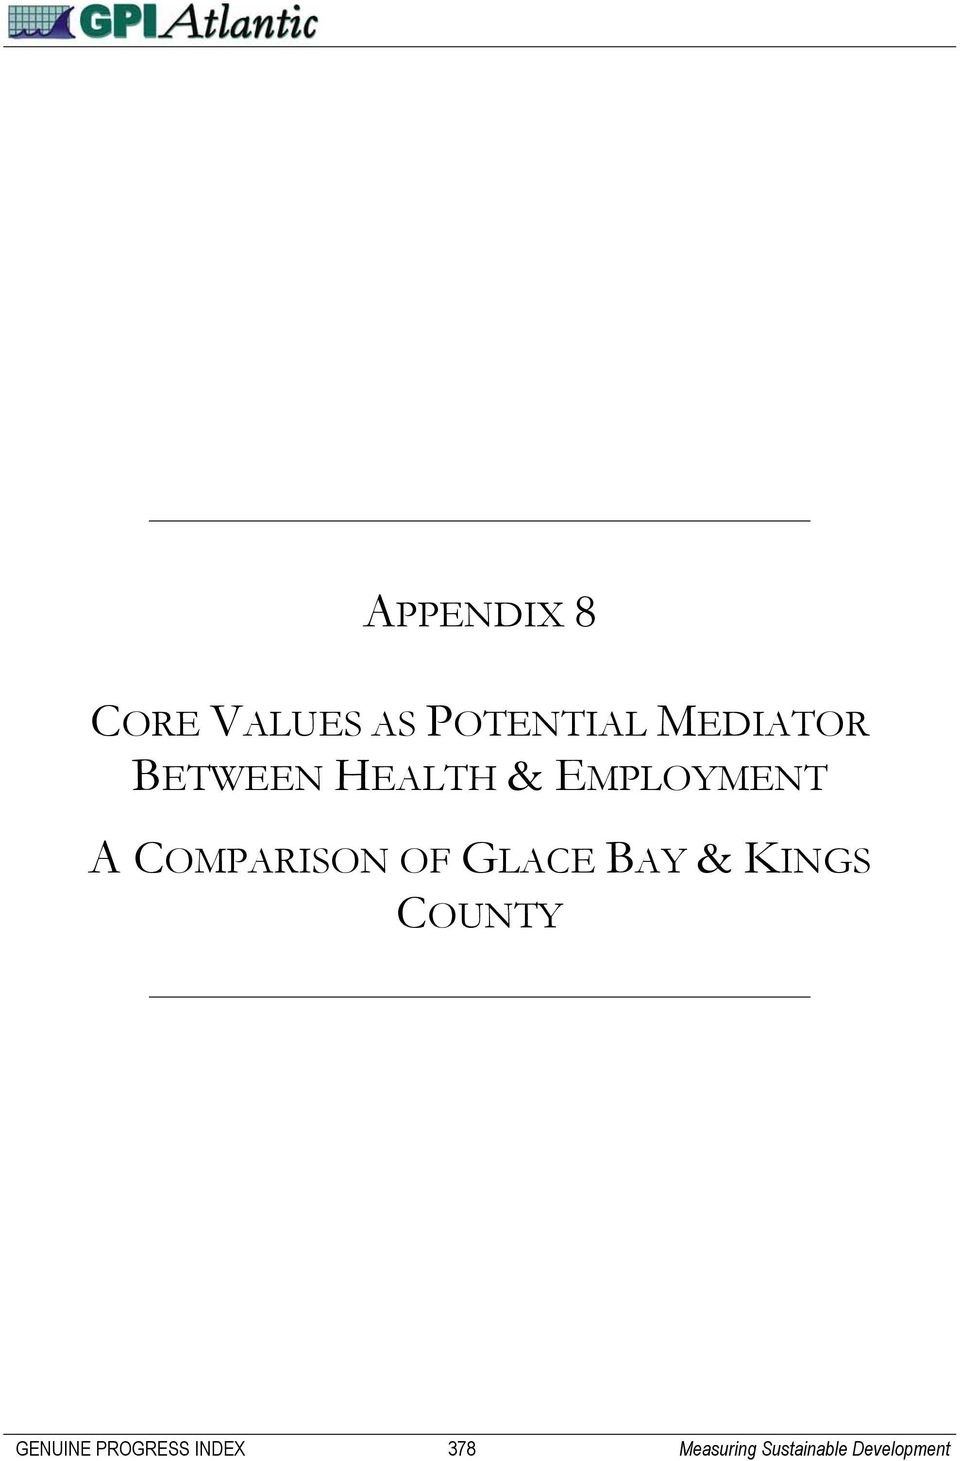 COMPARISON OF GLACE BAY & KINGS COUNTY